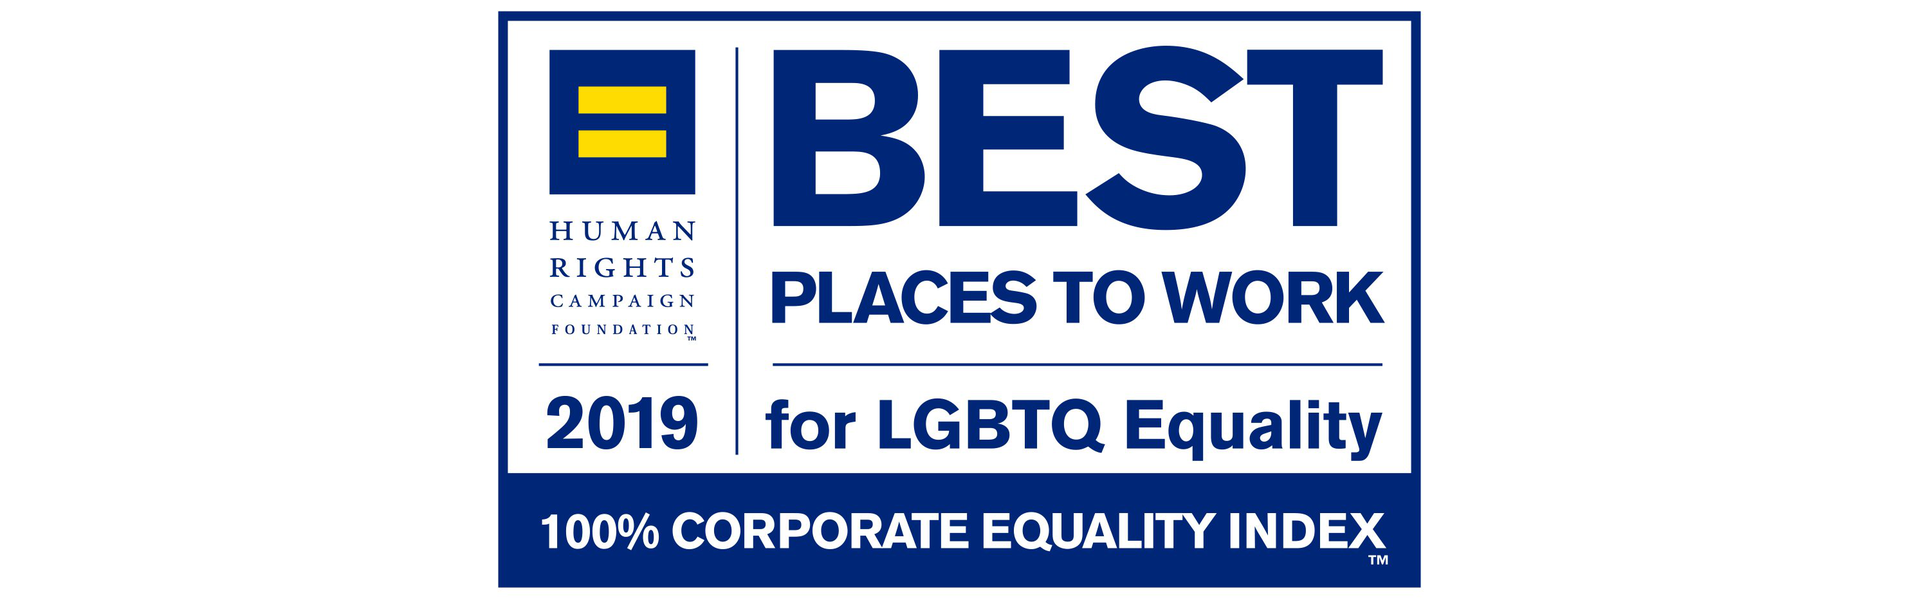 HRC CEI 2017 Best Places to Work for LGBT Equality